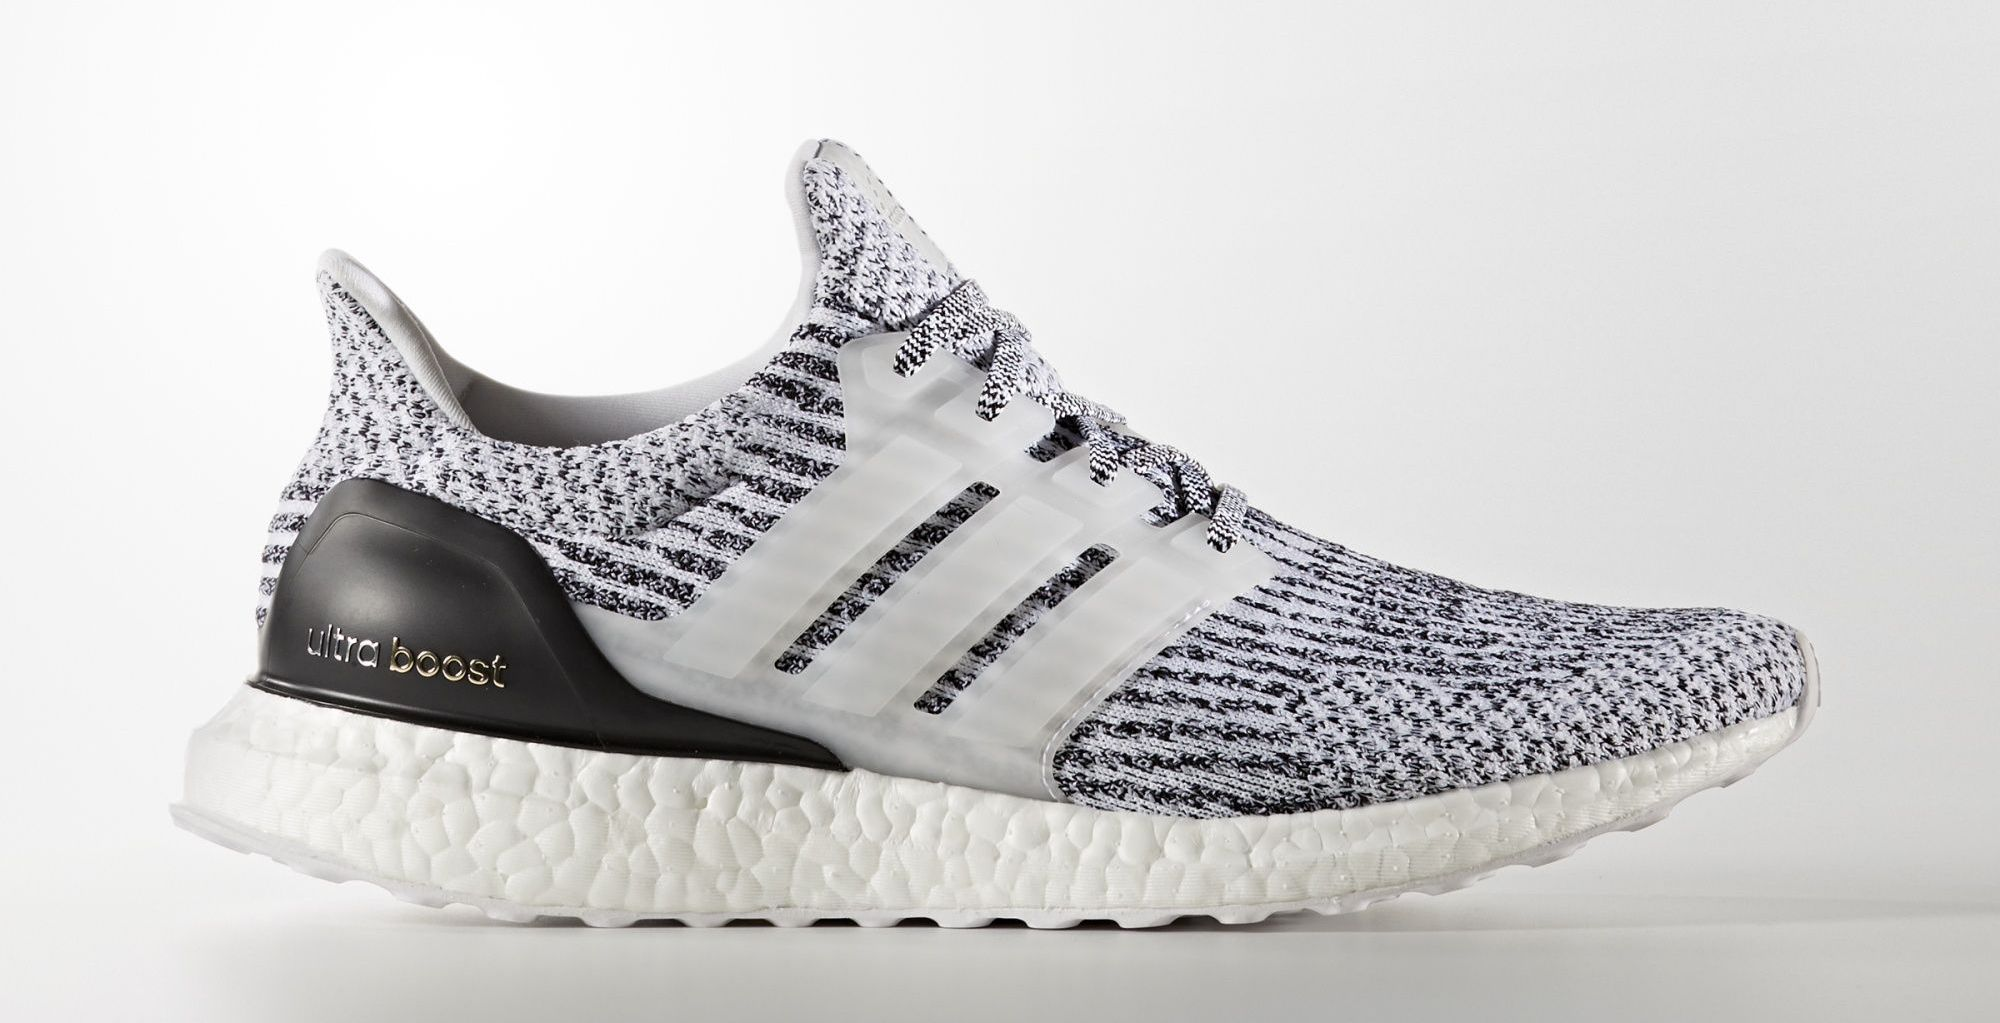 8c502e9d158 You can get the  Oreo  Adidas Ultra Boost 3.0 at these stores.